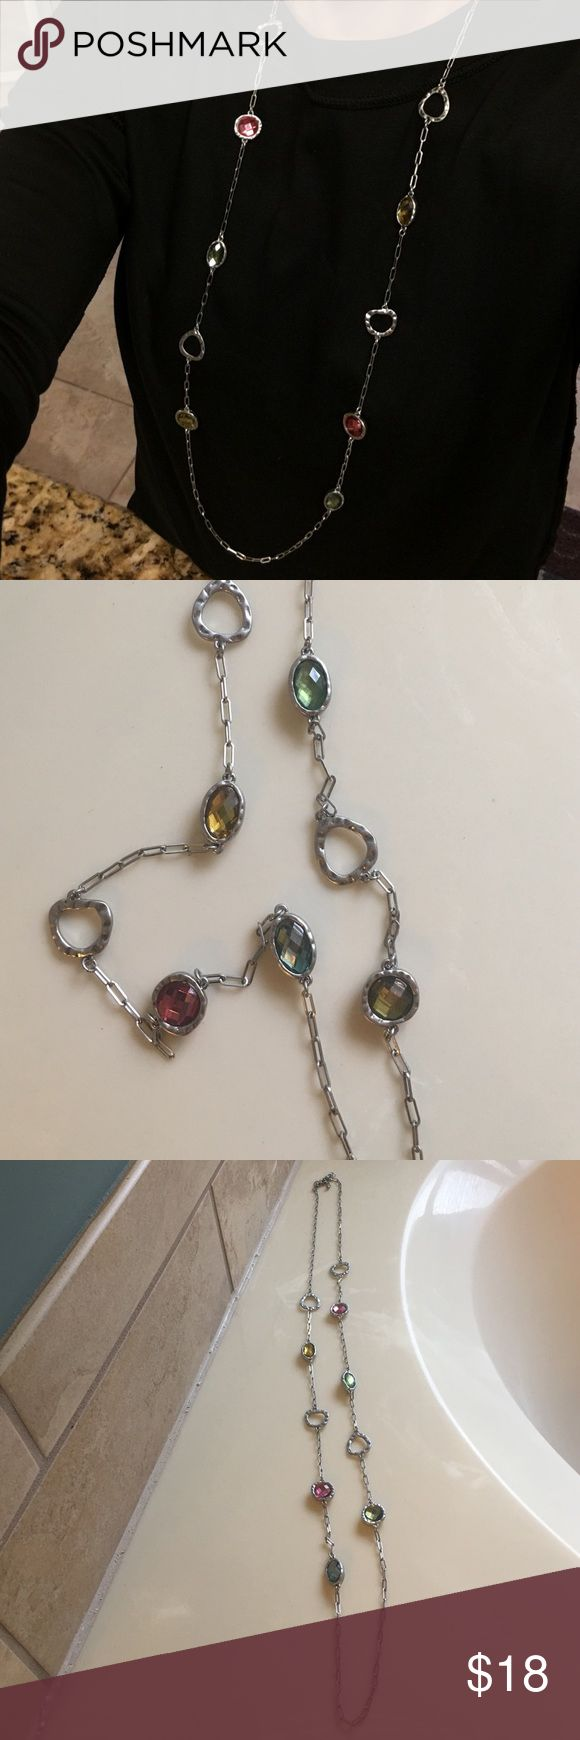 Lia Sophia Necklace Pretty long necklace with multi colored stones. Can be worn long or doubled! ❤️ Lia Sophia Jewelry Necklaces